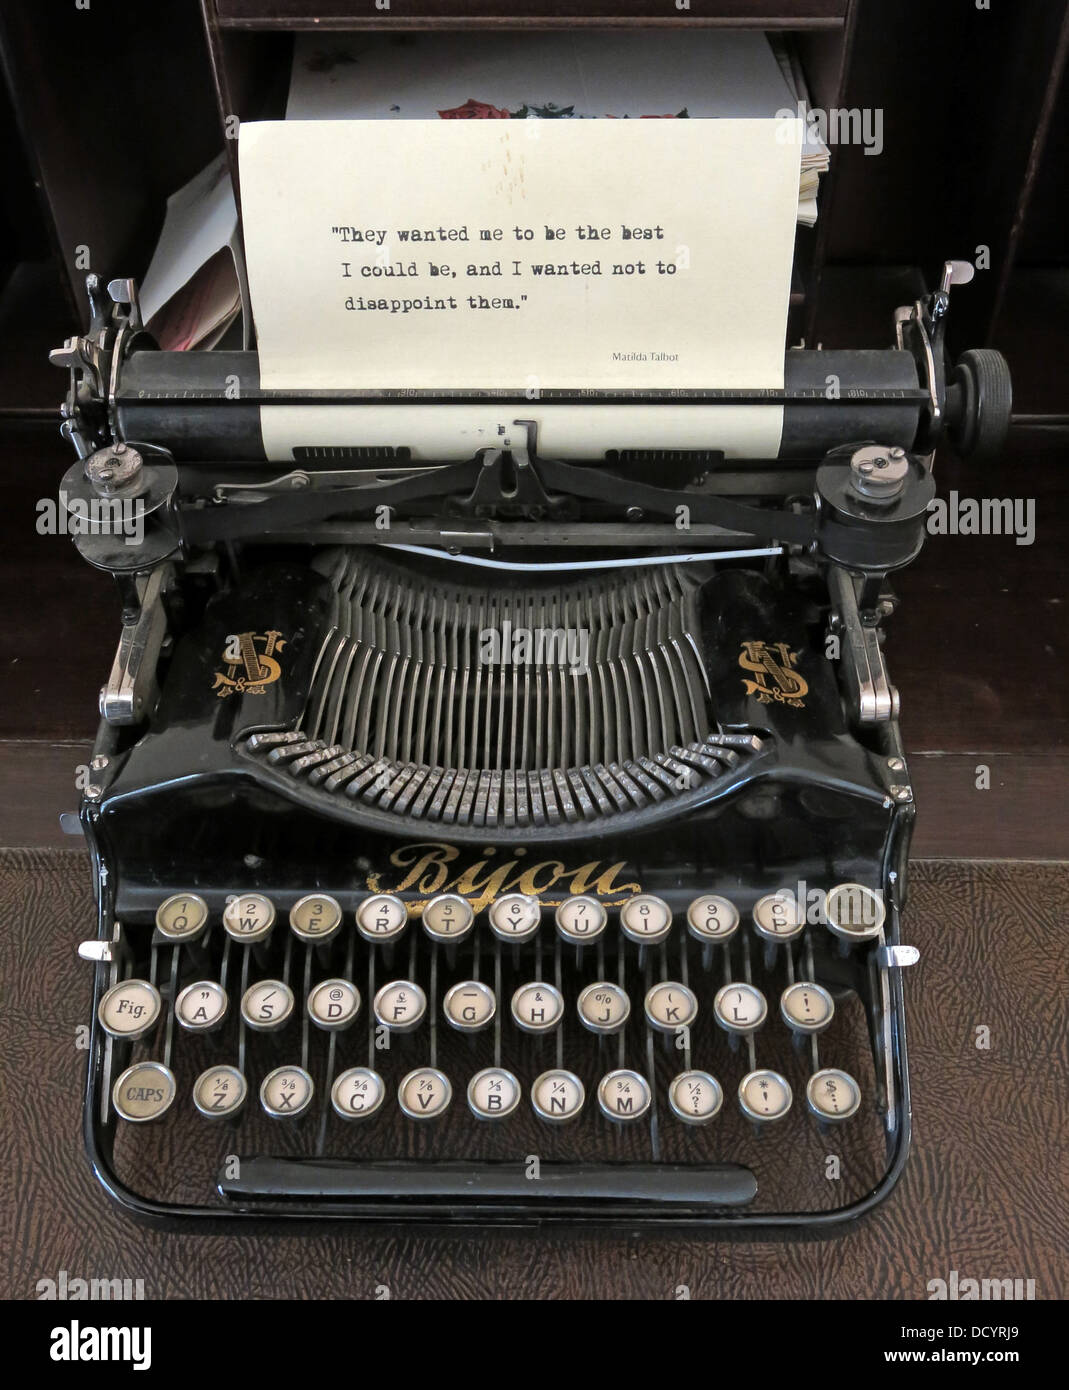 'They wanted me to be the best I could be, and I wanted not to disappoint them' on a old Byou Typewriter, - Stock Image